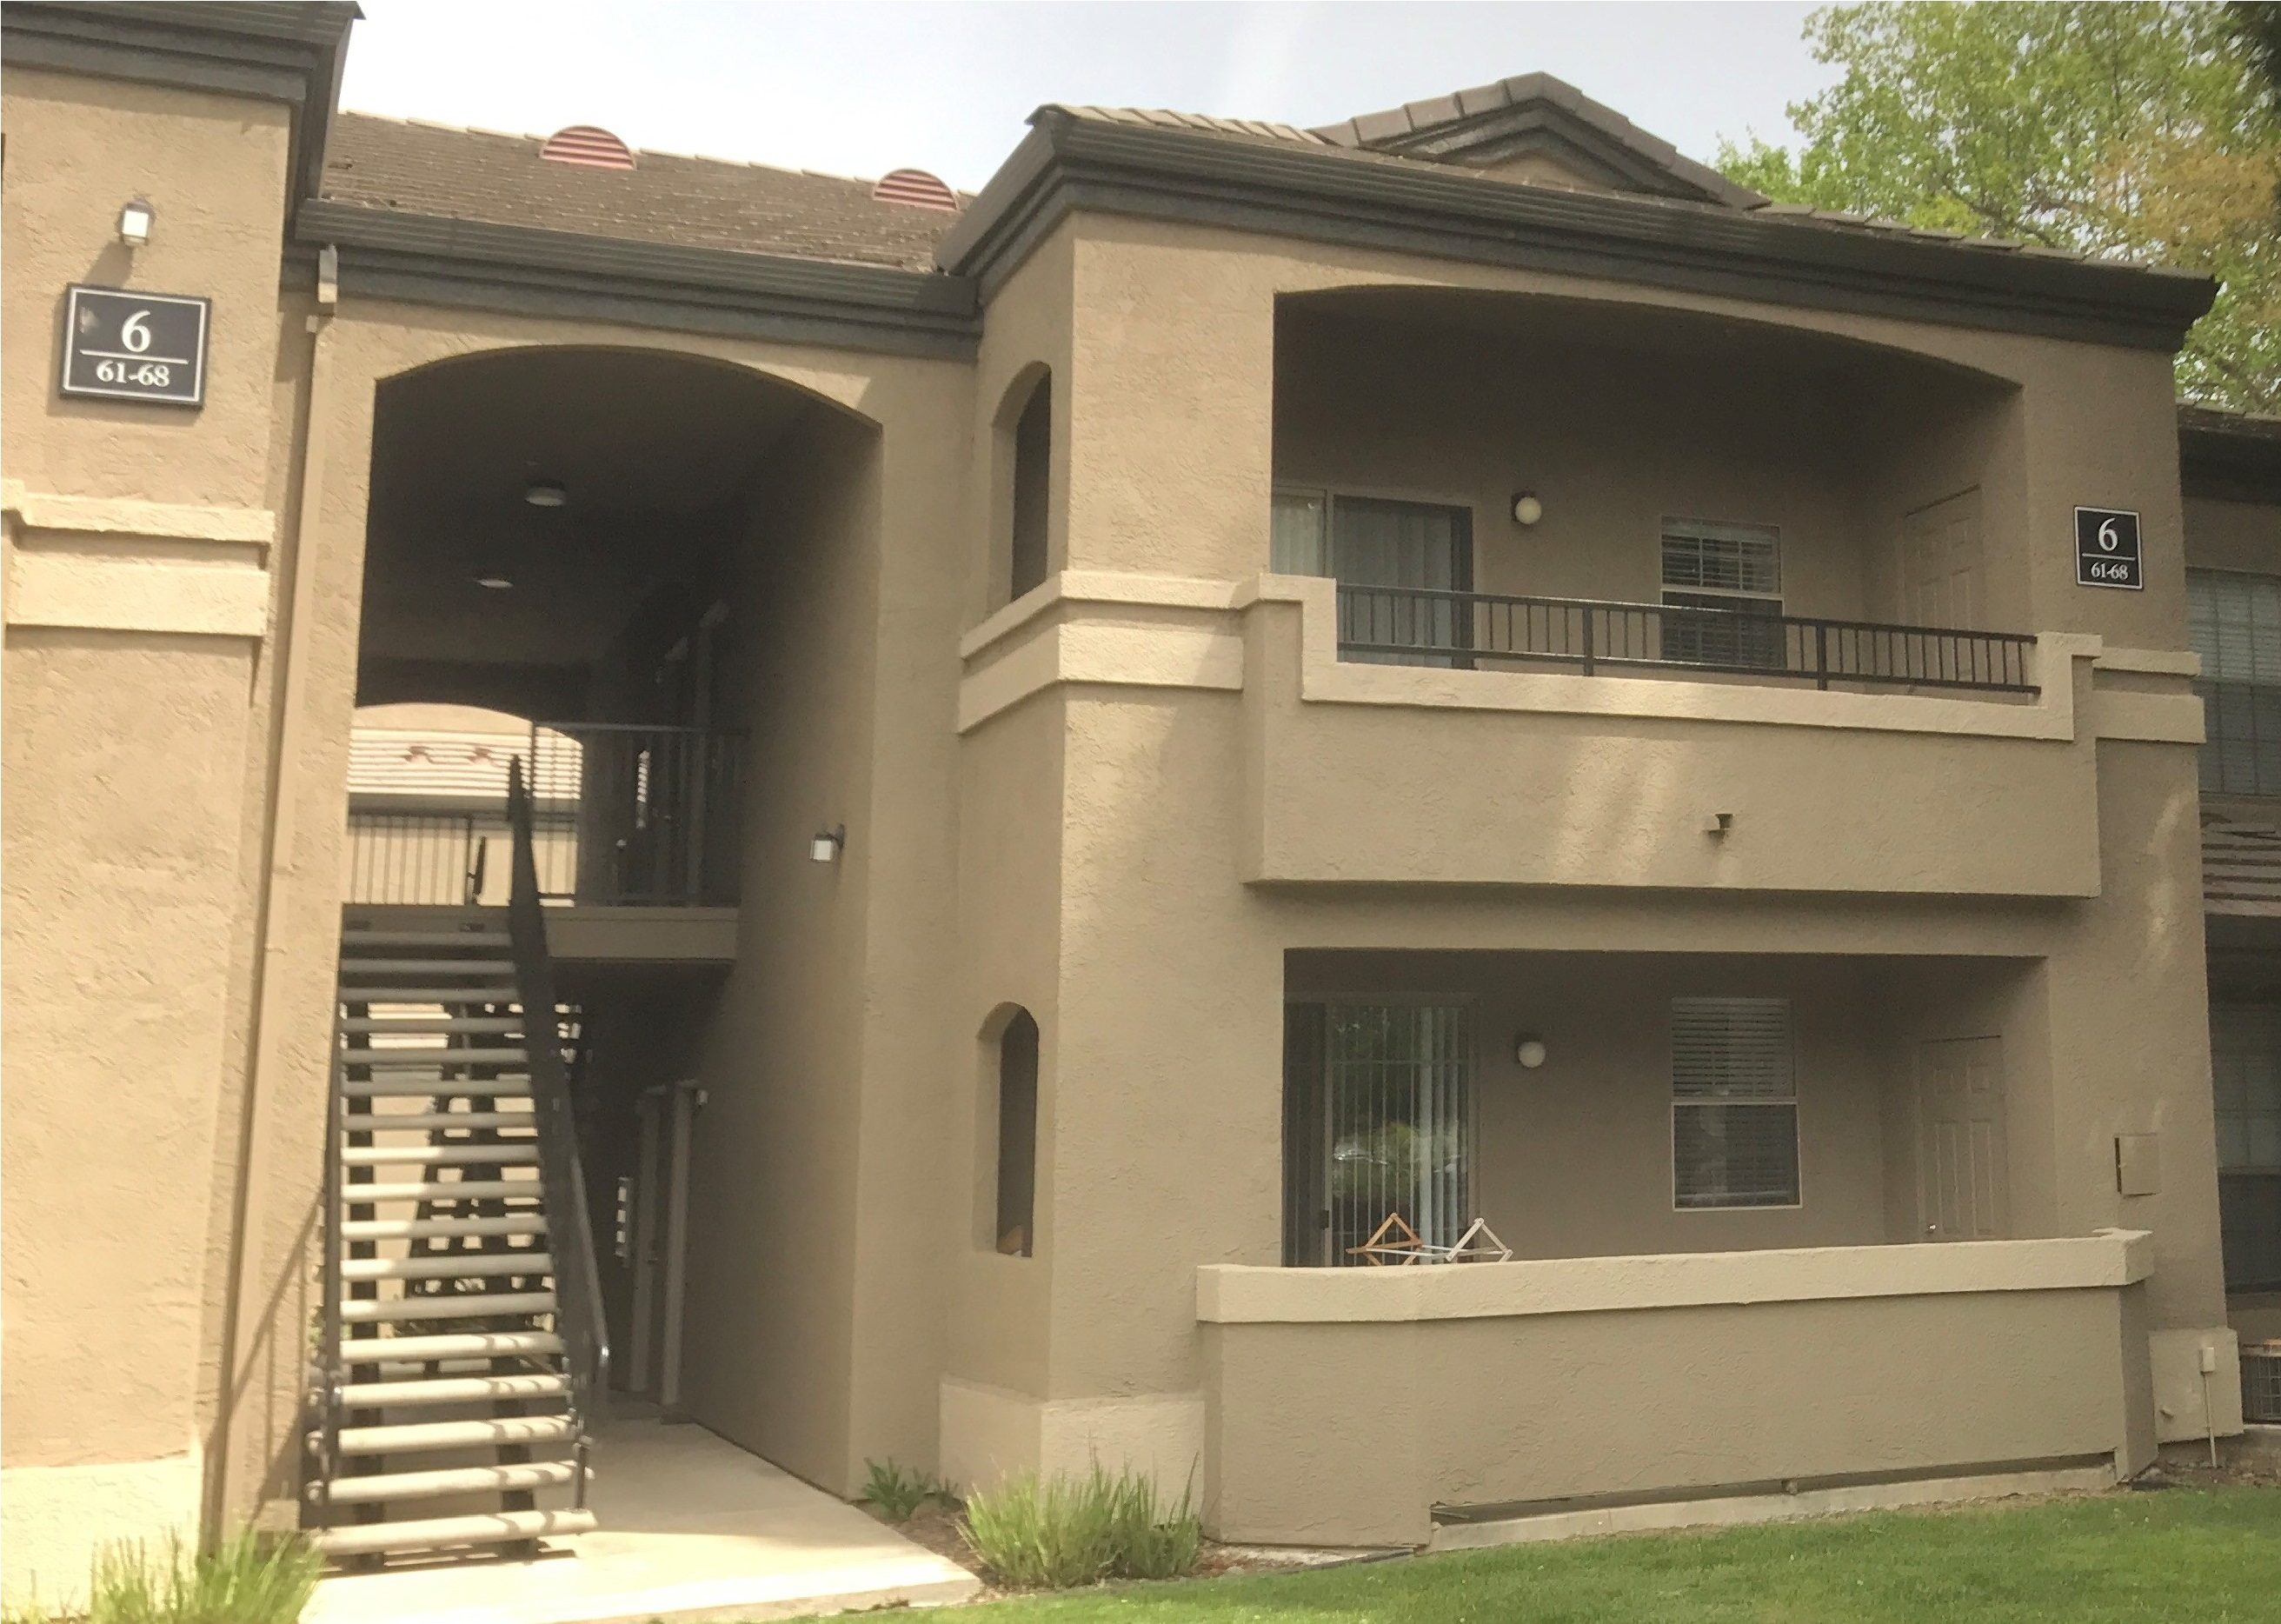 Commercial House Painting - Interior Exterior Home Painting Sacramento CA